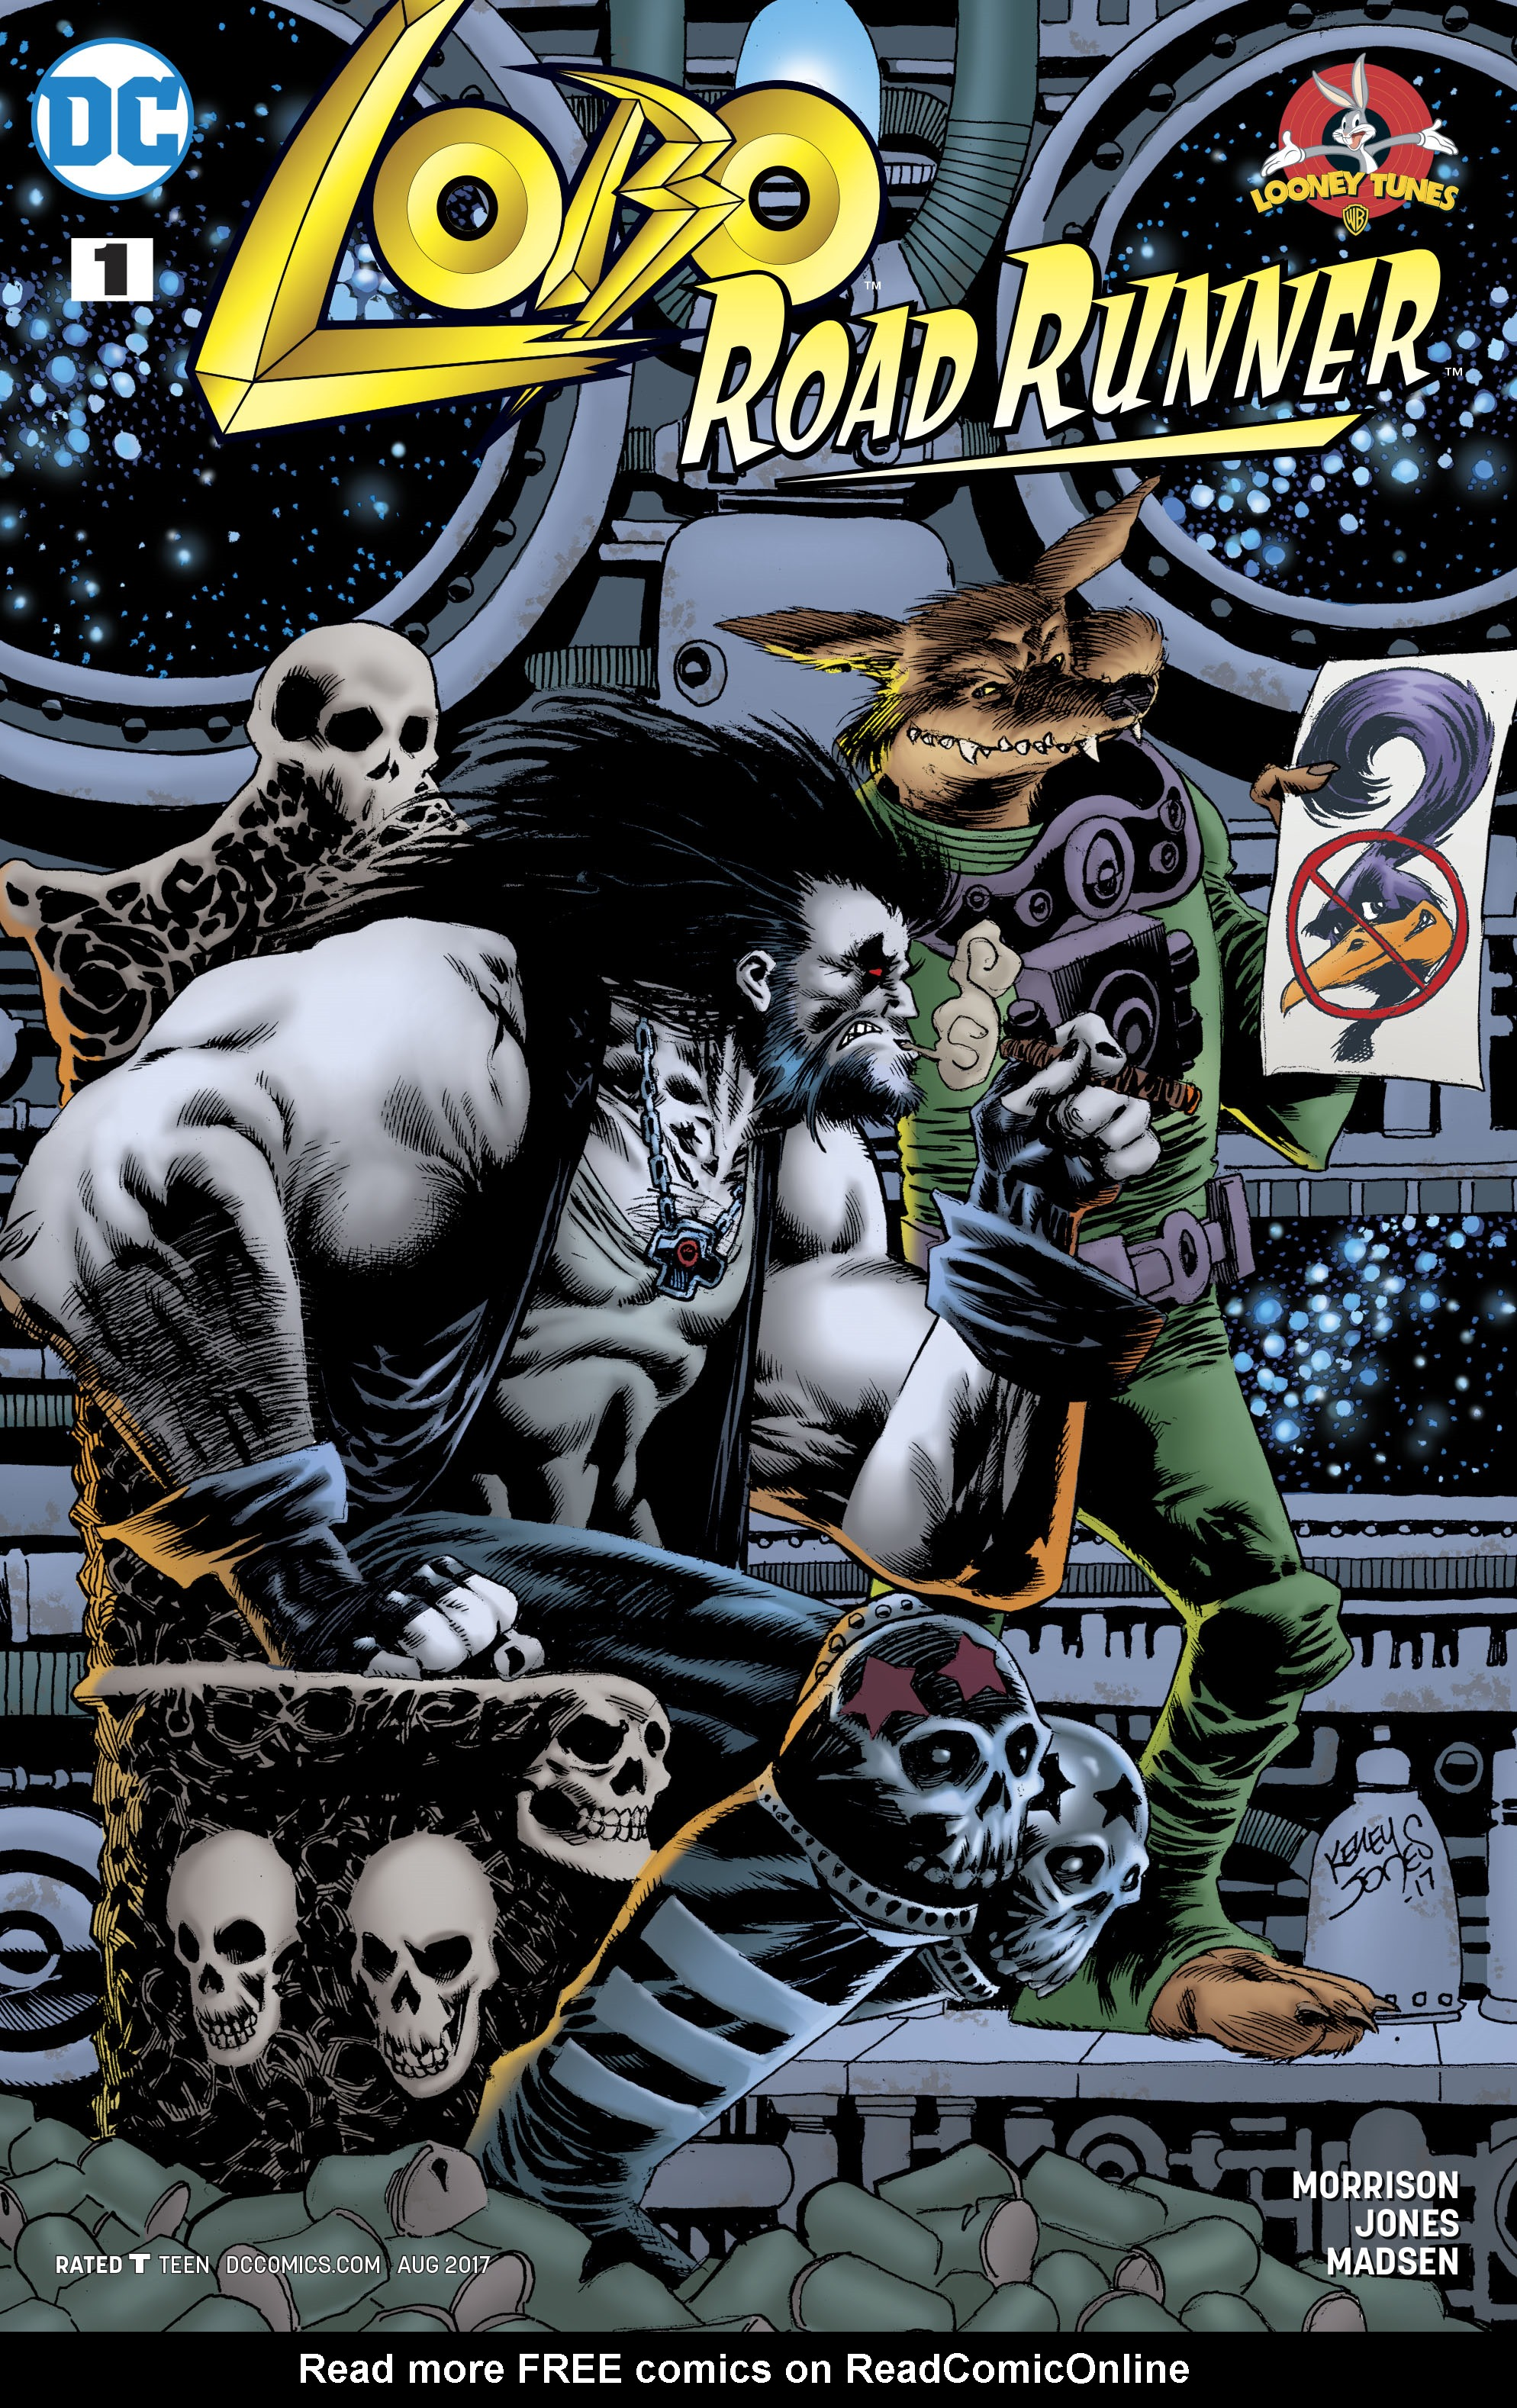 Read online Lobo/Road Runner Special comic -  Issue # Full - 1